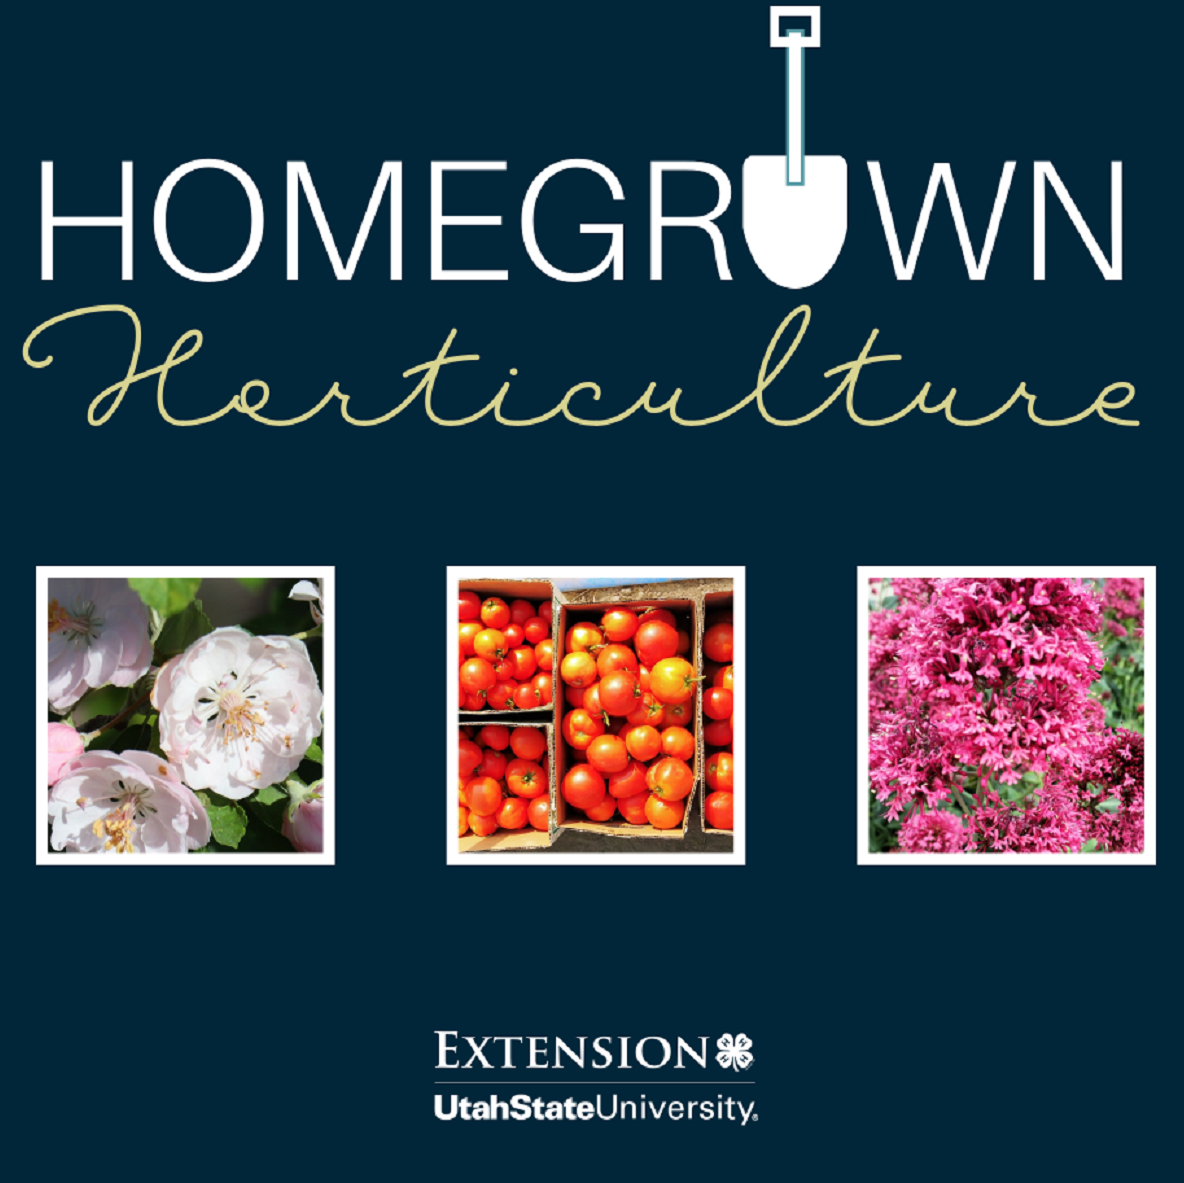 Homegrown Horticulture